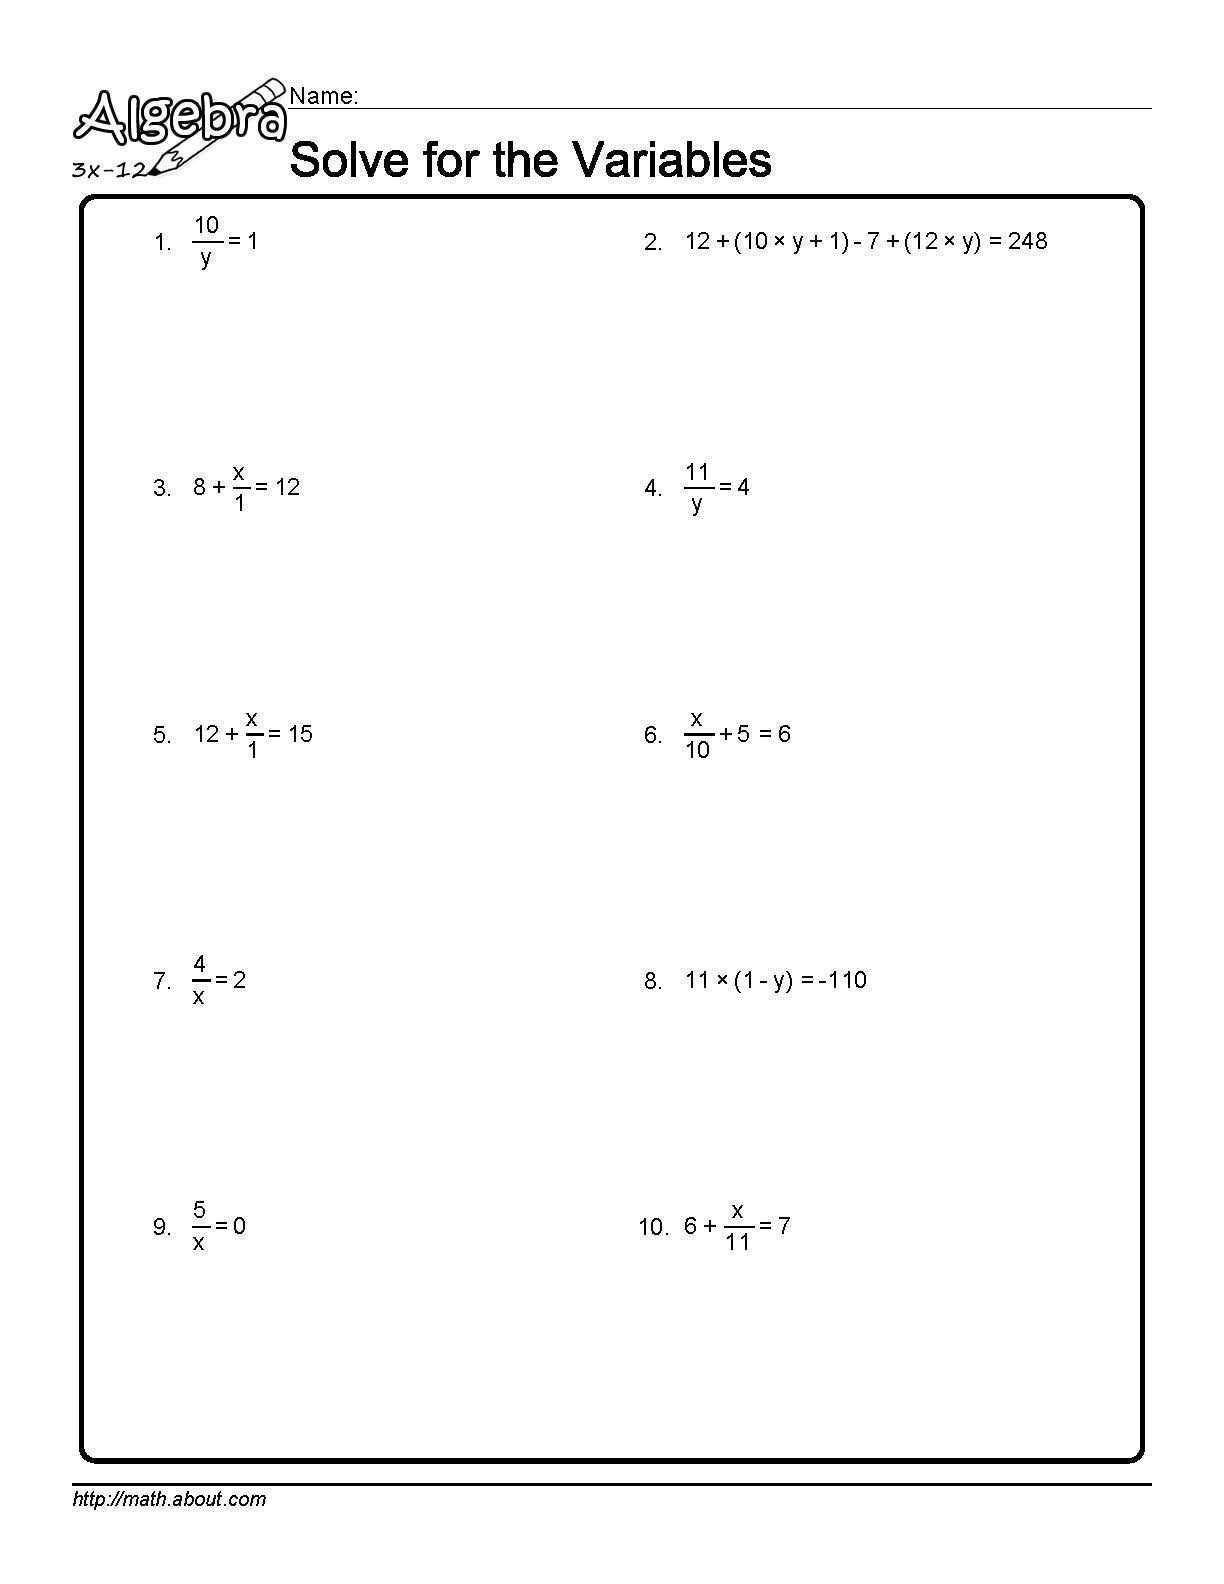 Solving Linear Equations Practice Worksheet together with solve for the Variables Worksheet 1 Of 10